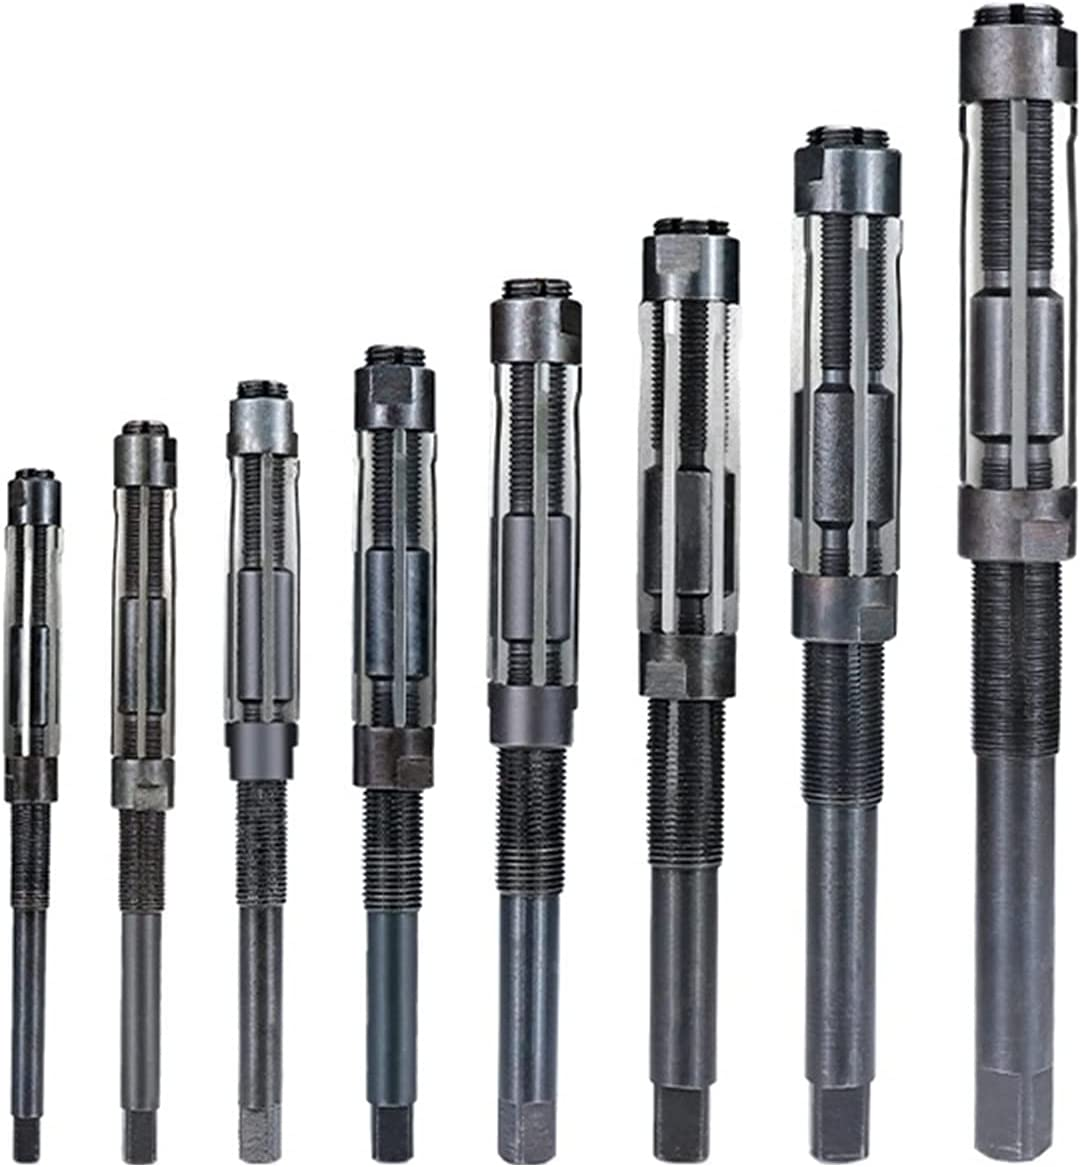 ZUAN TIME 6-33.5mm Adjustable Don't miss the campaign Hand Reamer Machine Cutting Tools 67% OFF of fixed price